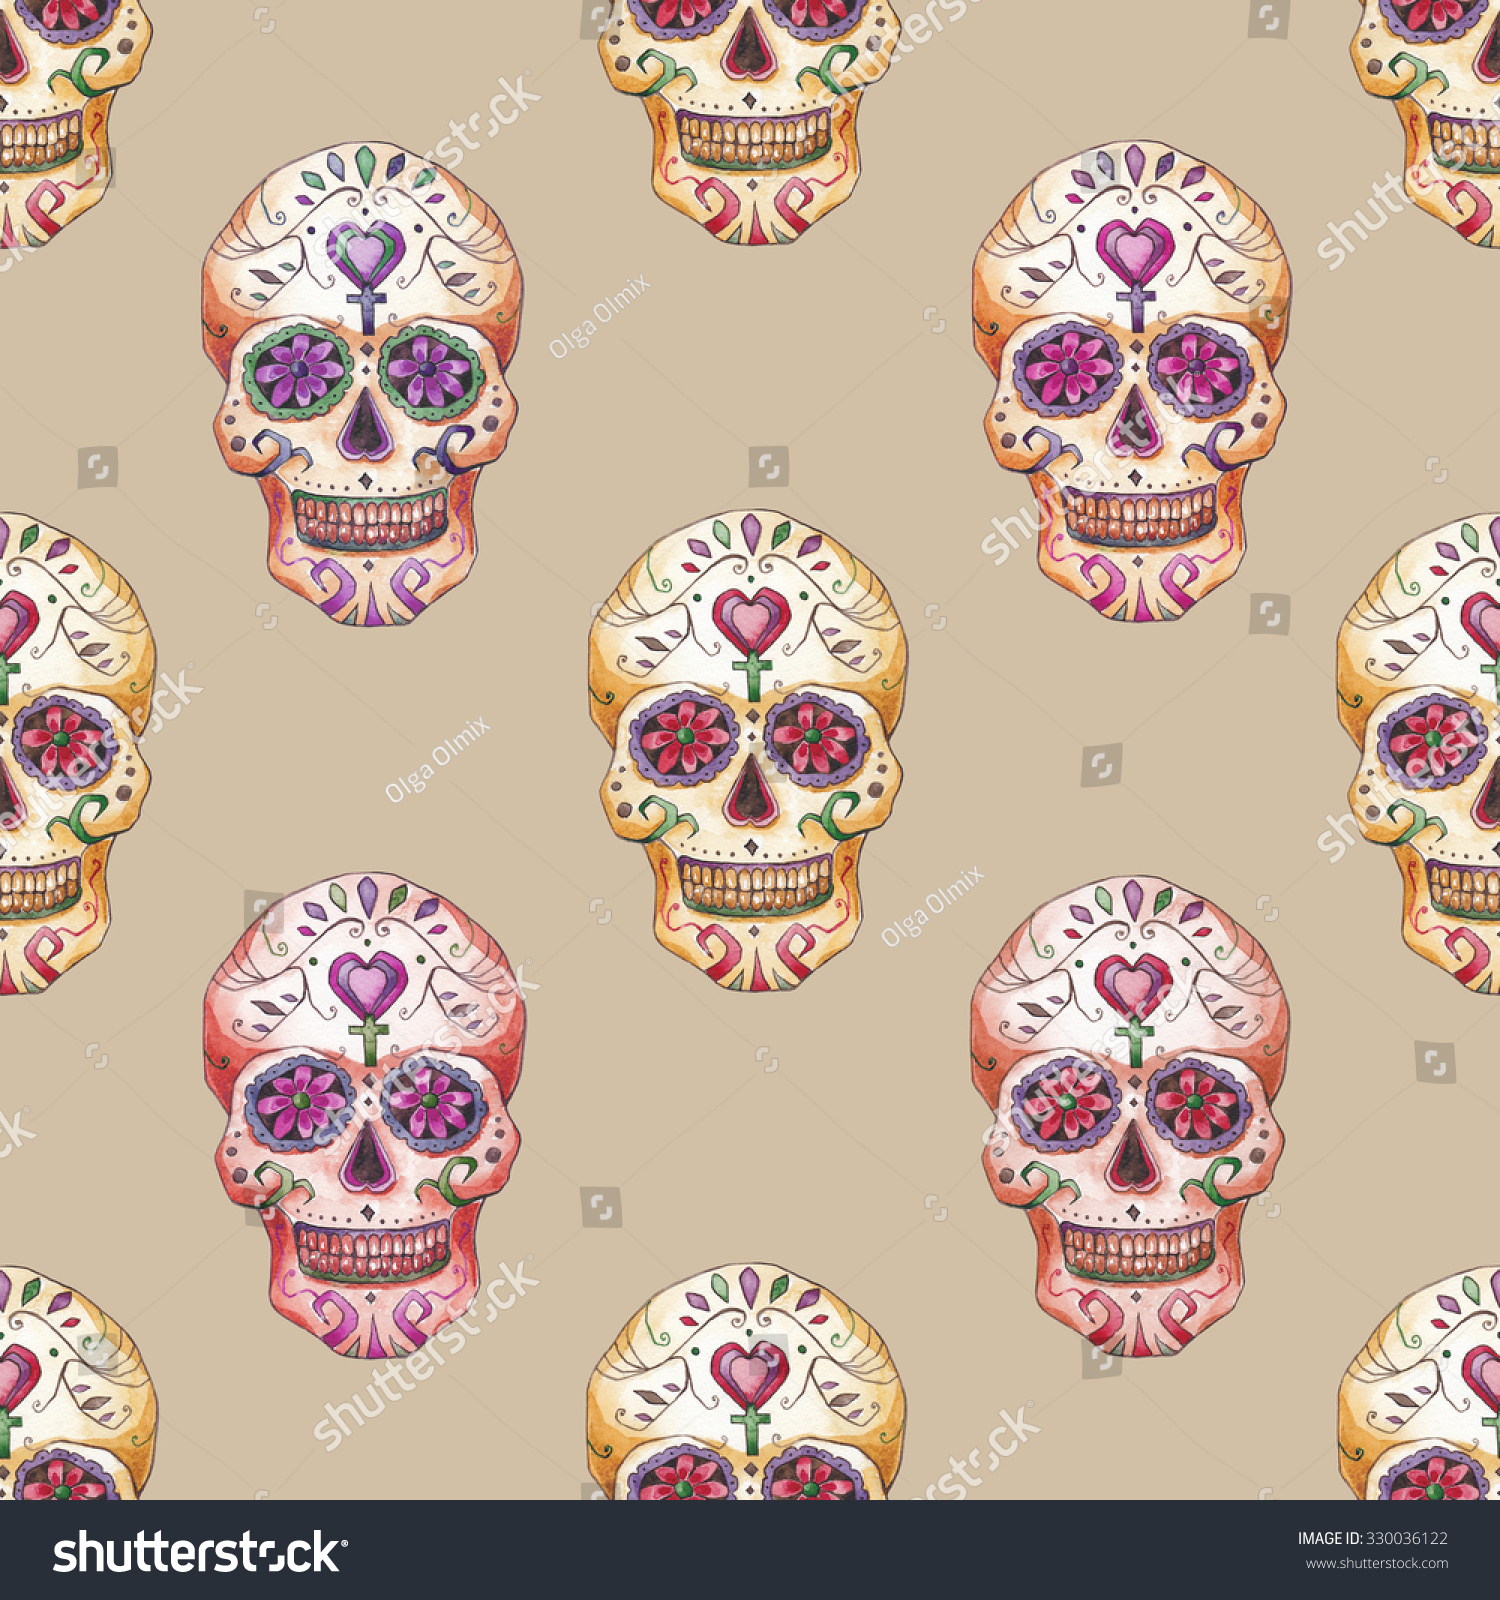 Day The Dead Skull Seamless on background